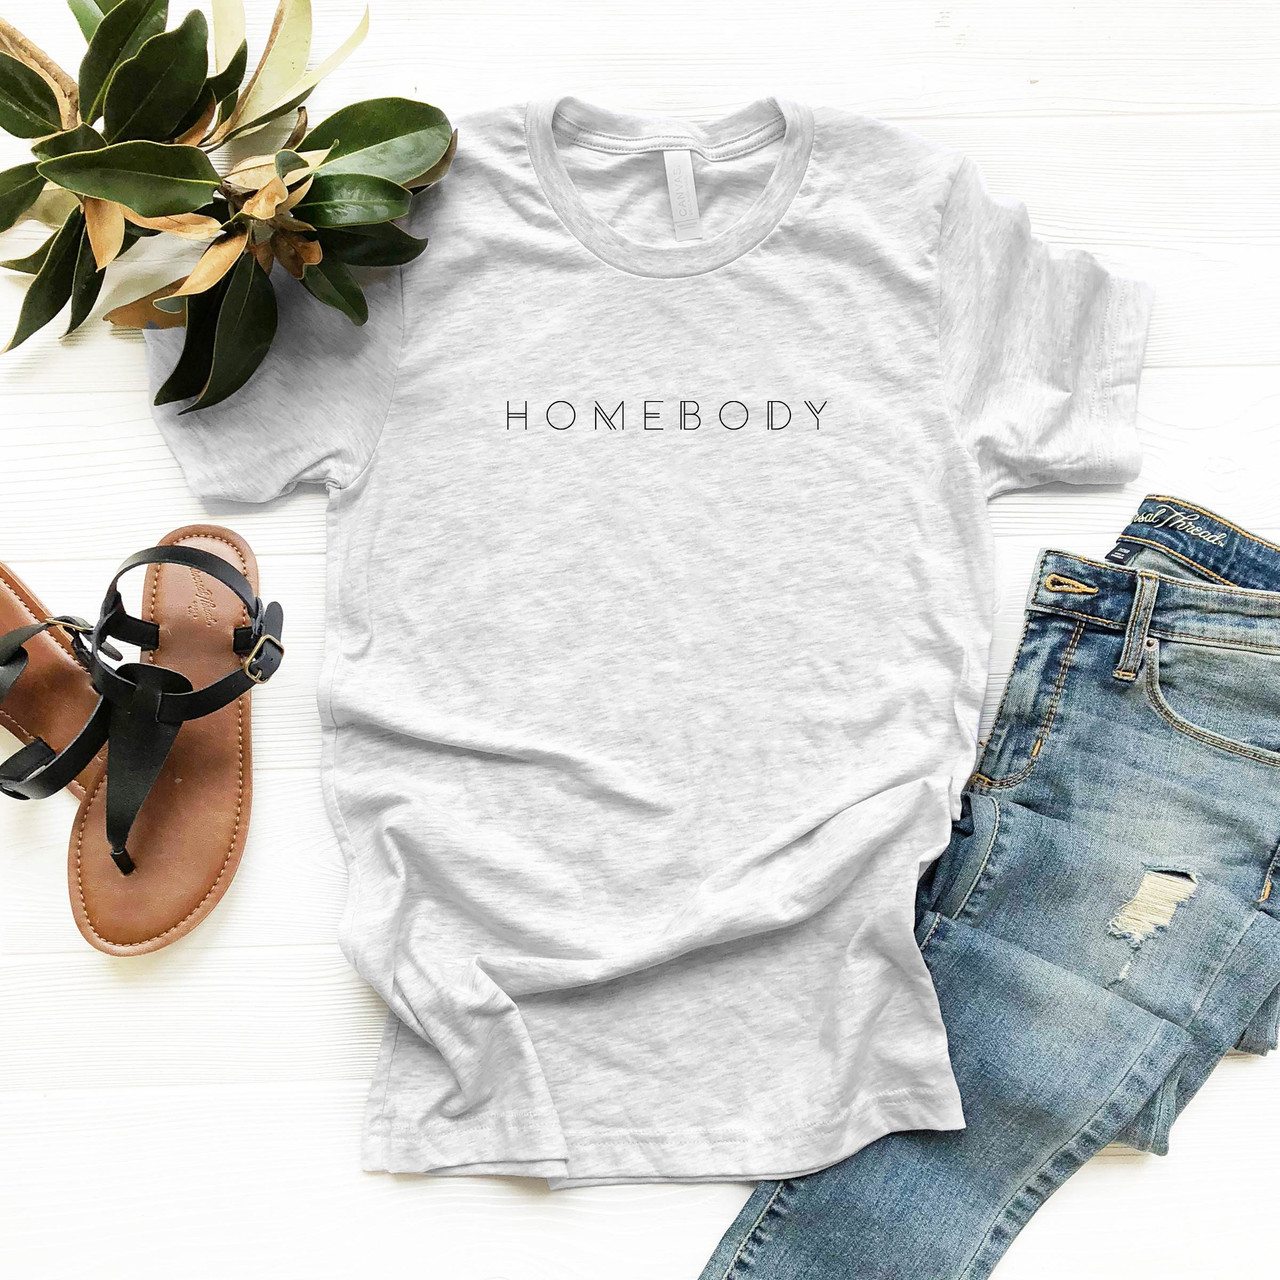 HOMEBODY Vintage T-Shirt (Black on Light Gray Fleck) from The Printed Home